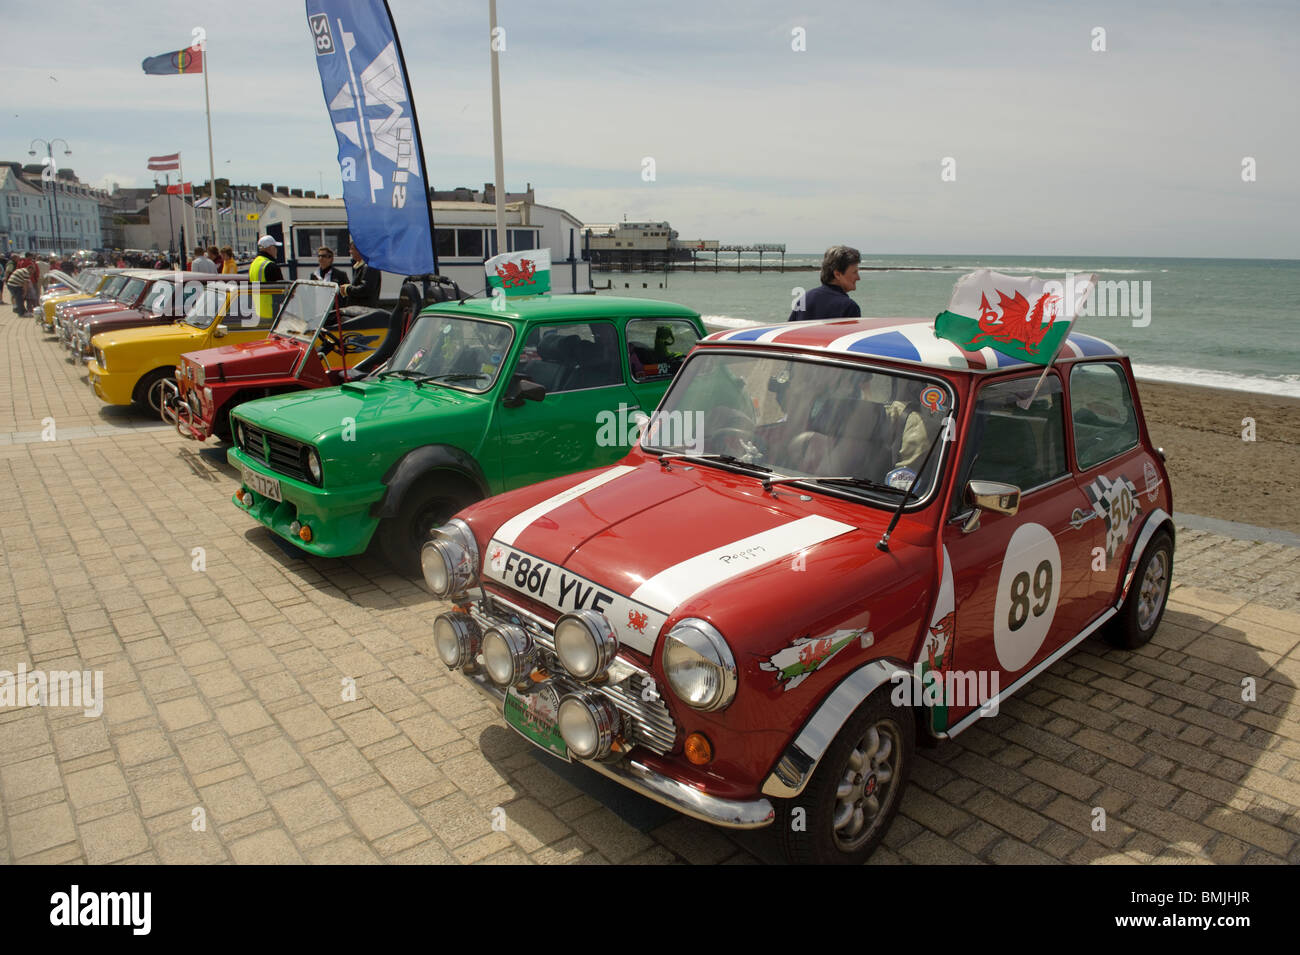 Mini car owners rally group meeting on Aberystwyth seafront promenade, Wales UK - Stock Image